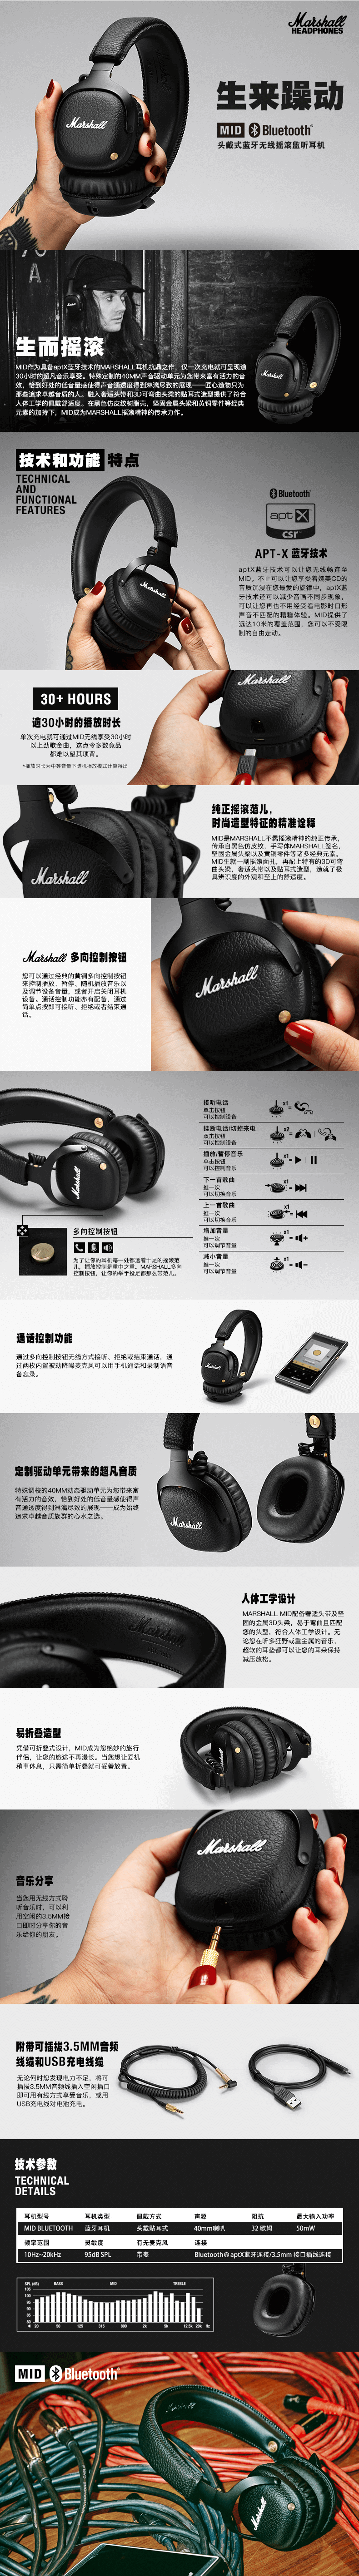 马歇尔 Marshall Mid Bluetooth Black 蓝牙耳机